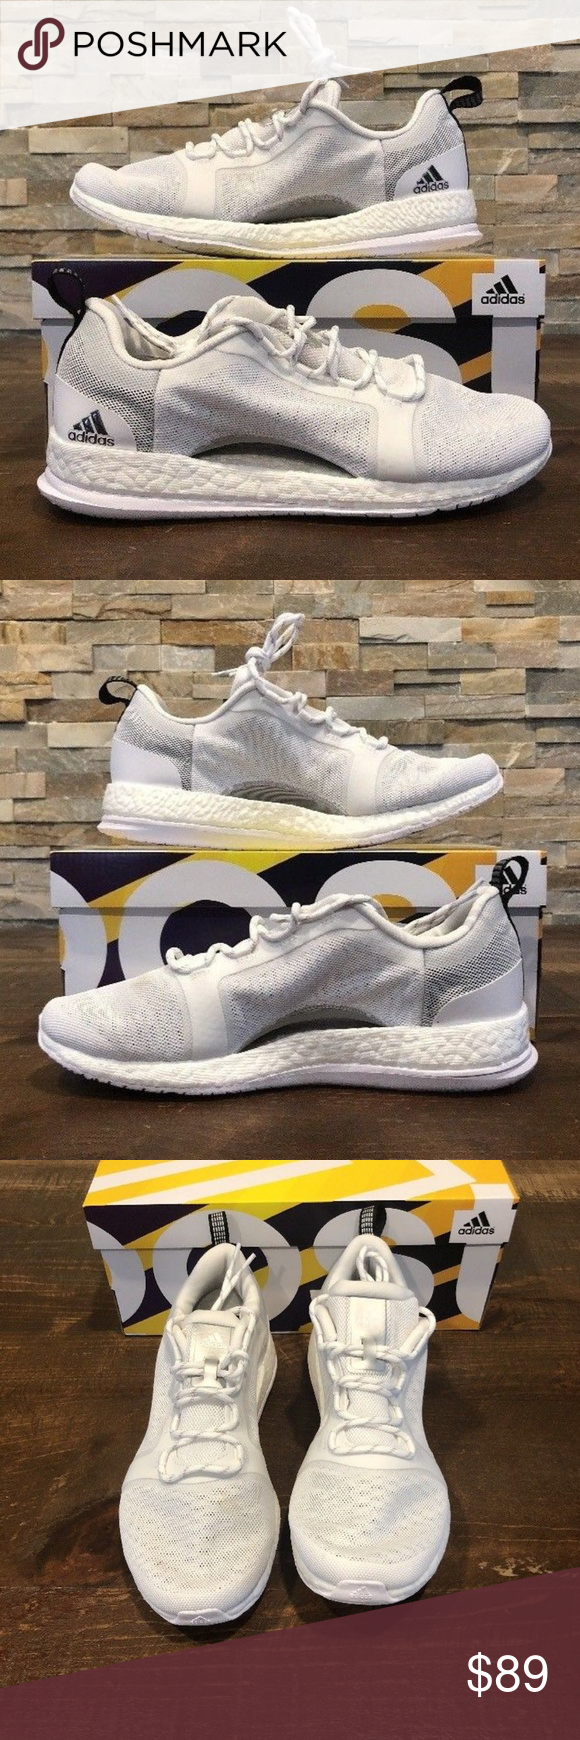 8633dc77403c2 Adidas Pure Boost X Trainer 2.0 Shoes Women s New Adidas Pure Boost X  Trainer 2.0 Shoes Women s White BB3285 New With Box Shipped Double Boxed  adidas Shoes ...